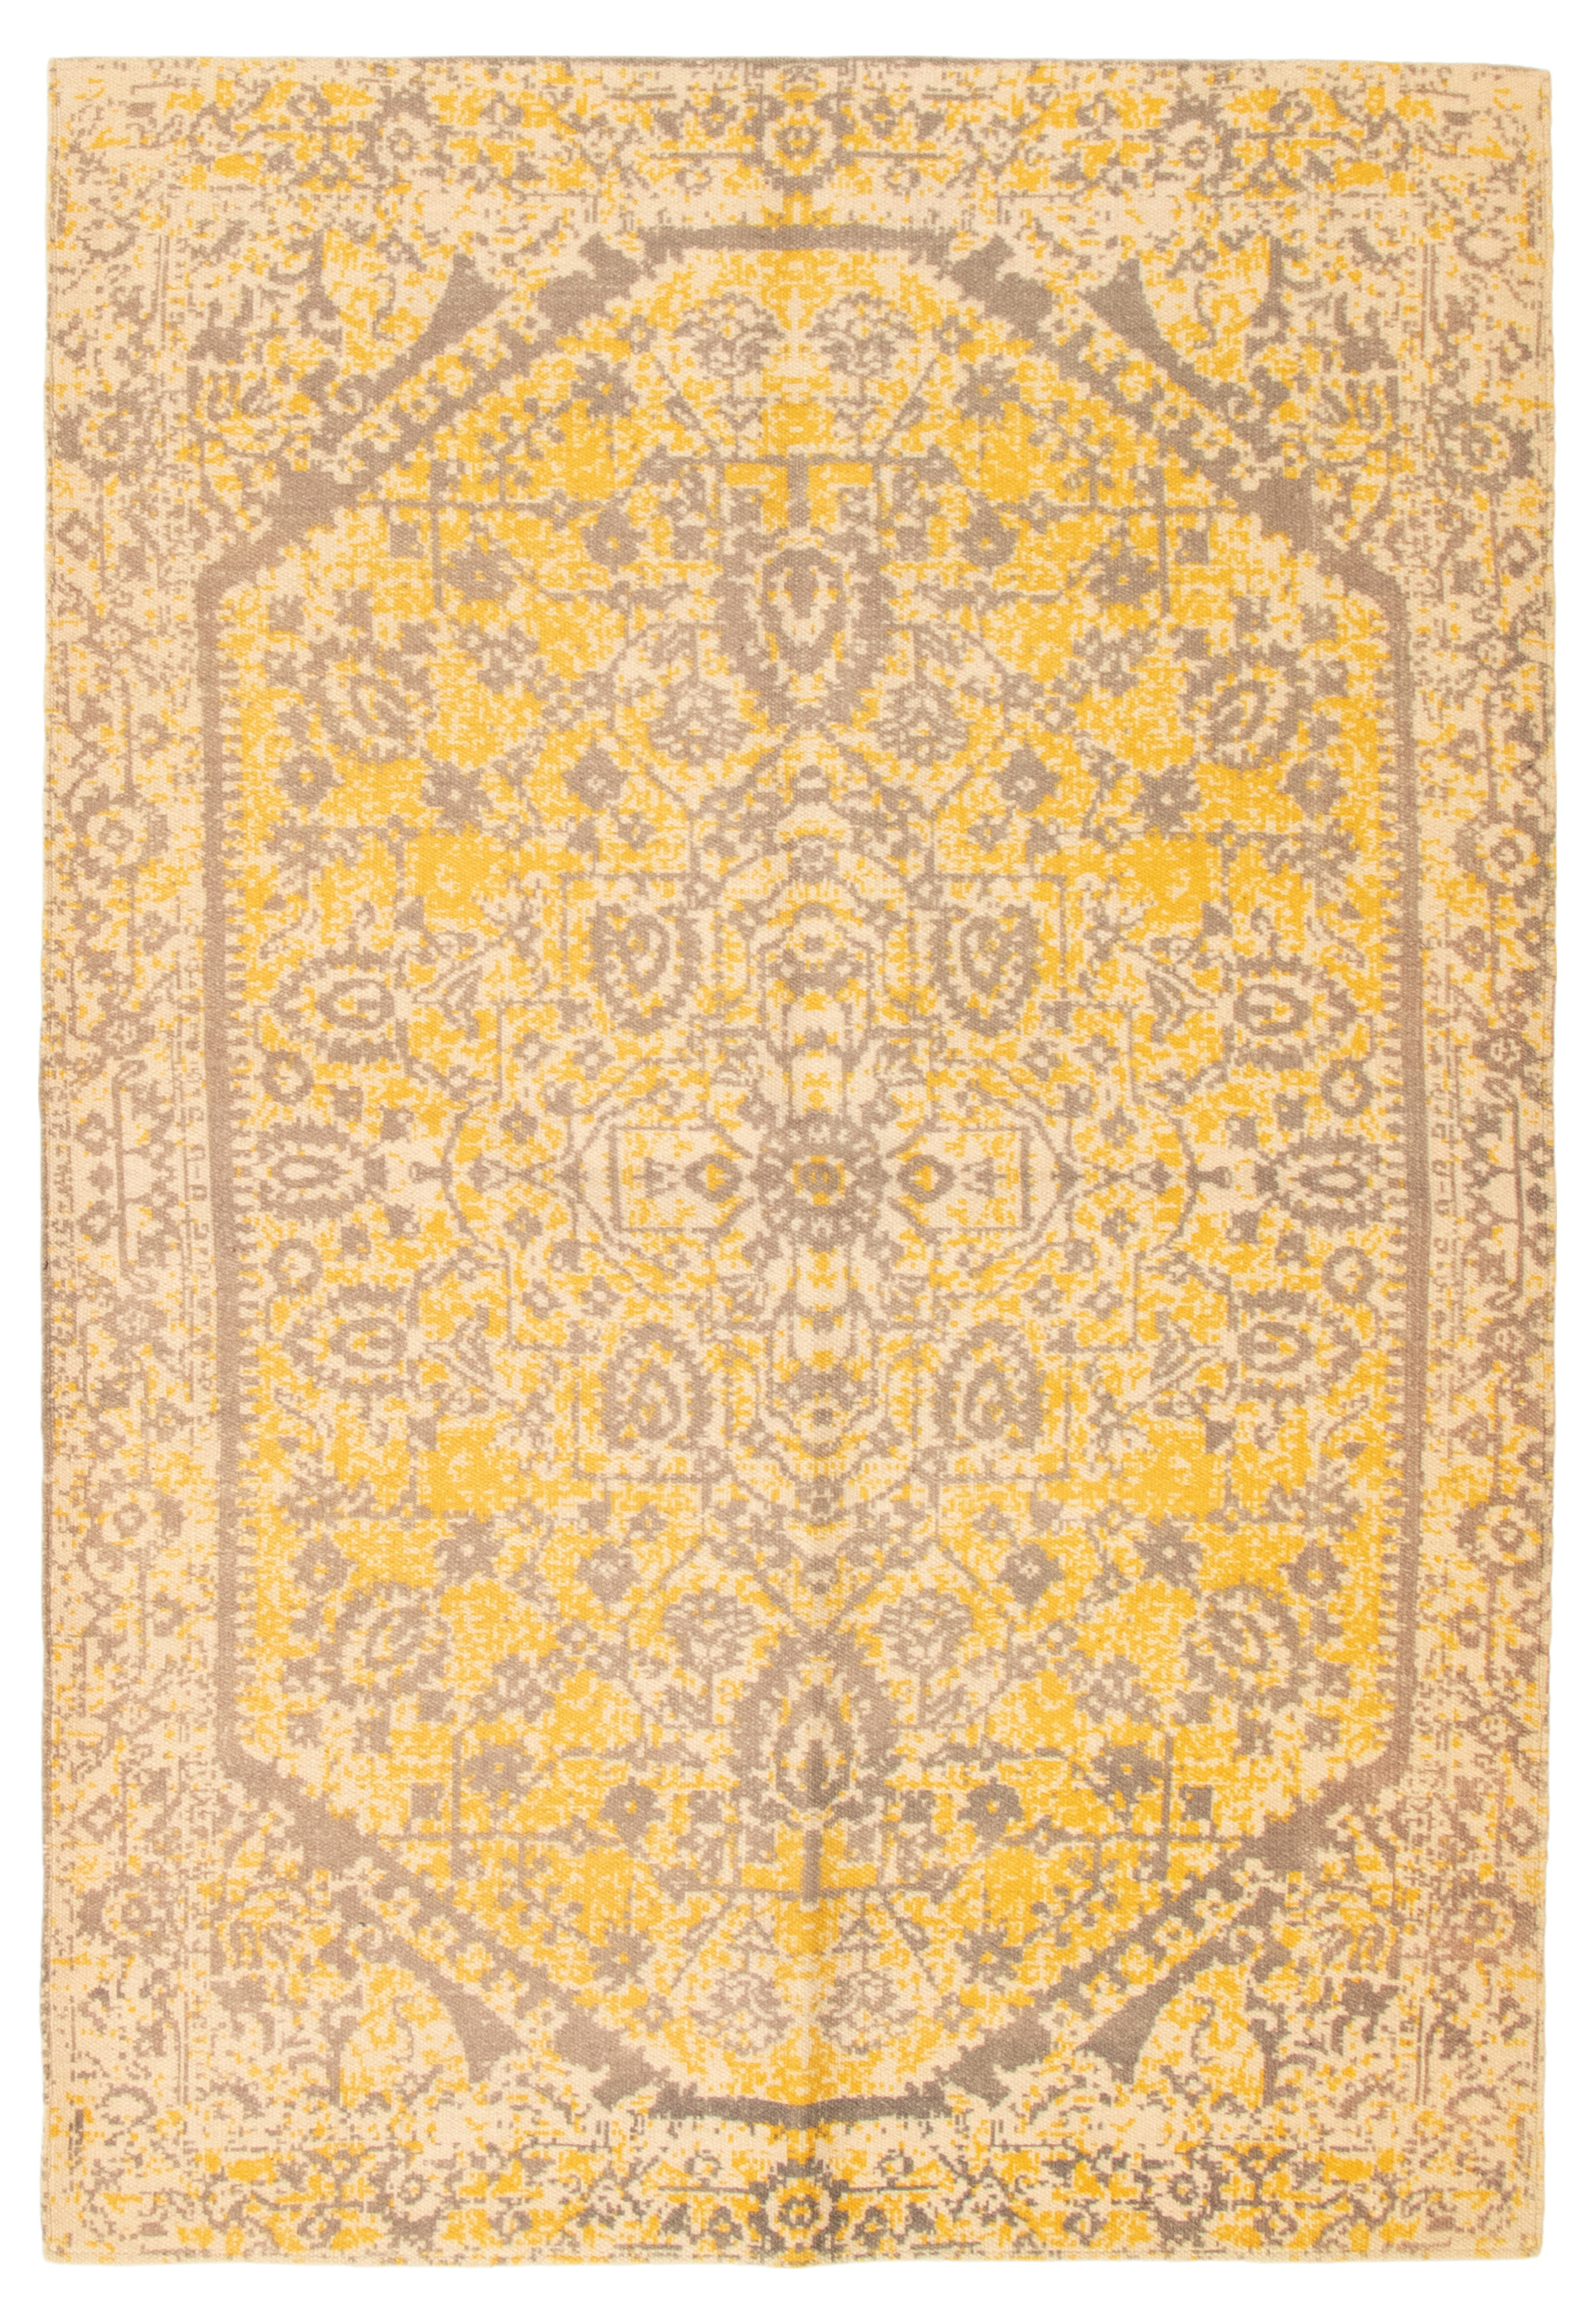 """Hand woven Color Transition Ivory, Light Gold Cotton Kilim 5'2"""" x 7'8"""" Size: 5'2"""" x 7'8"""""""